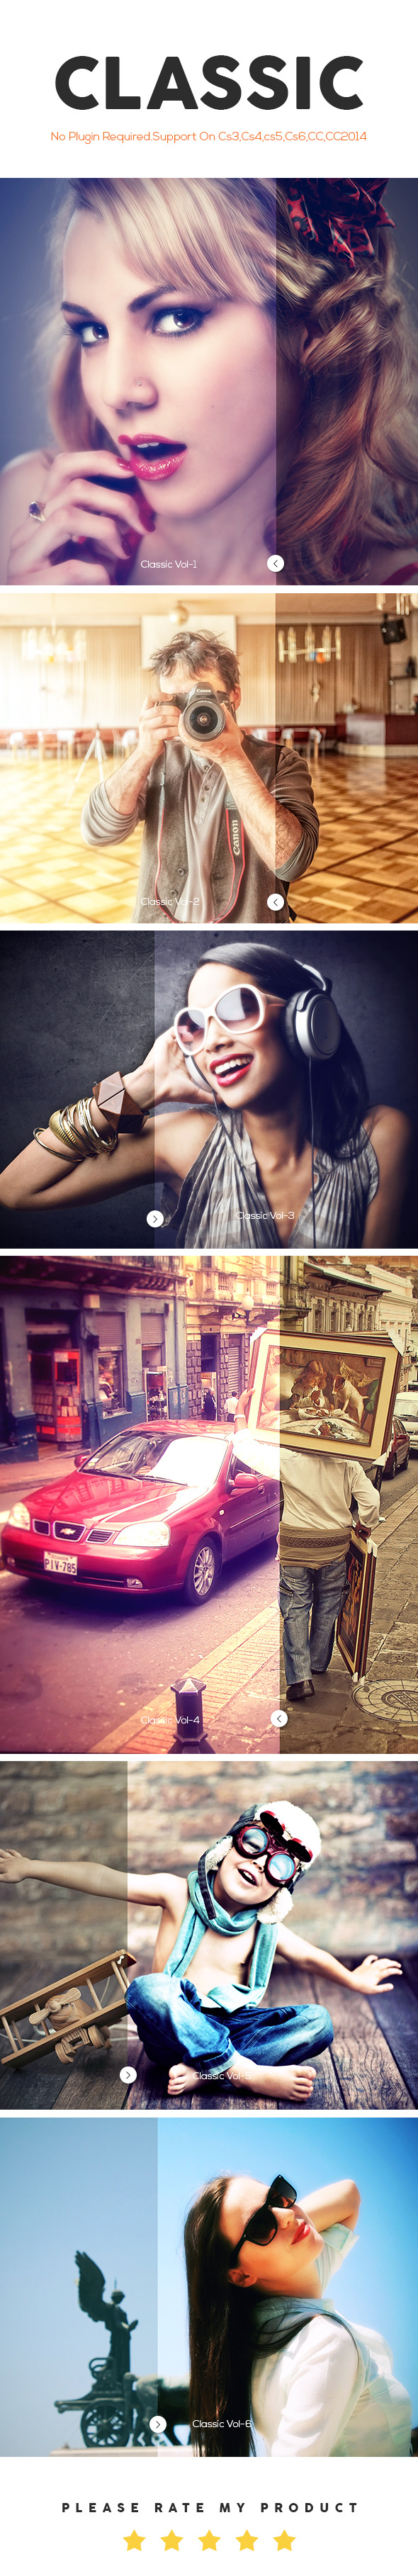 GraphicRiver Classic Photoshop Action 11256277